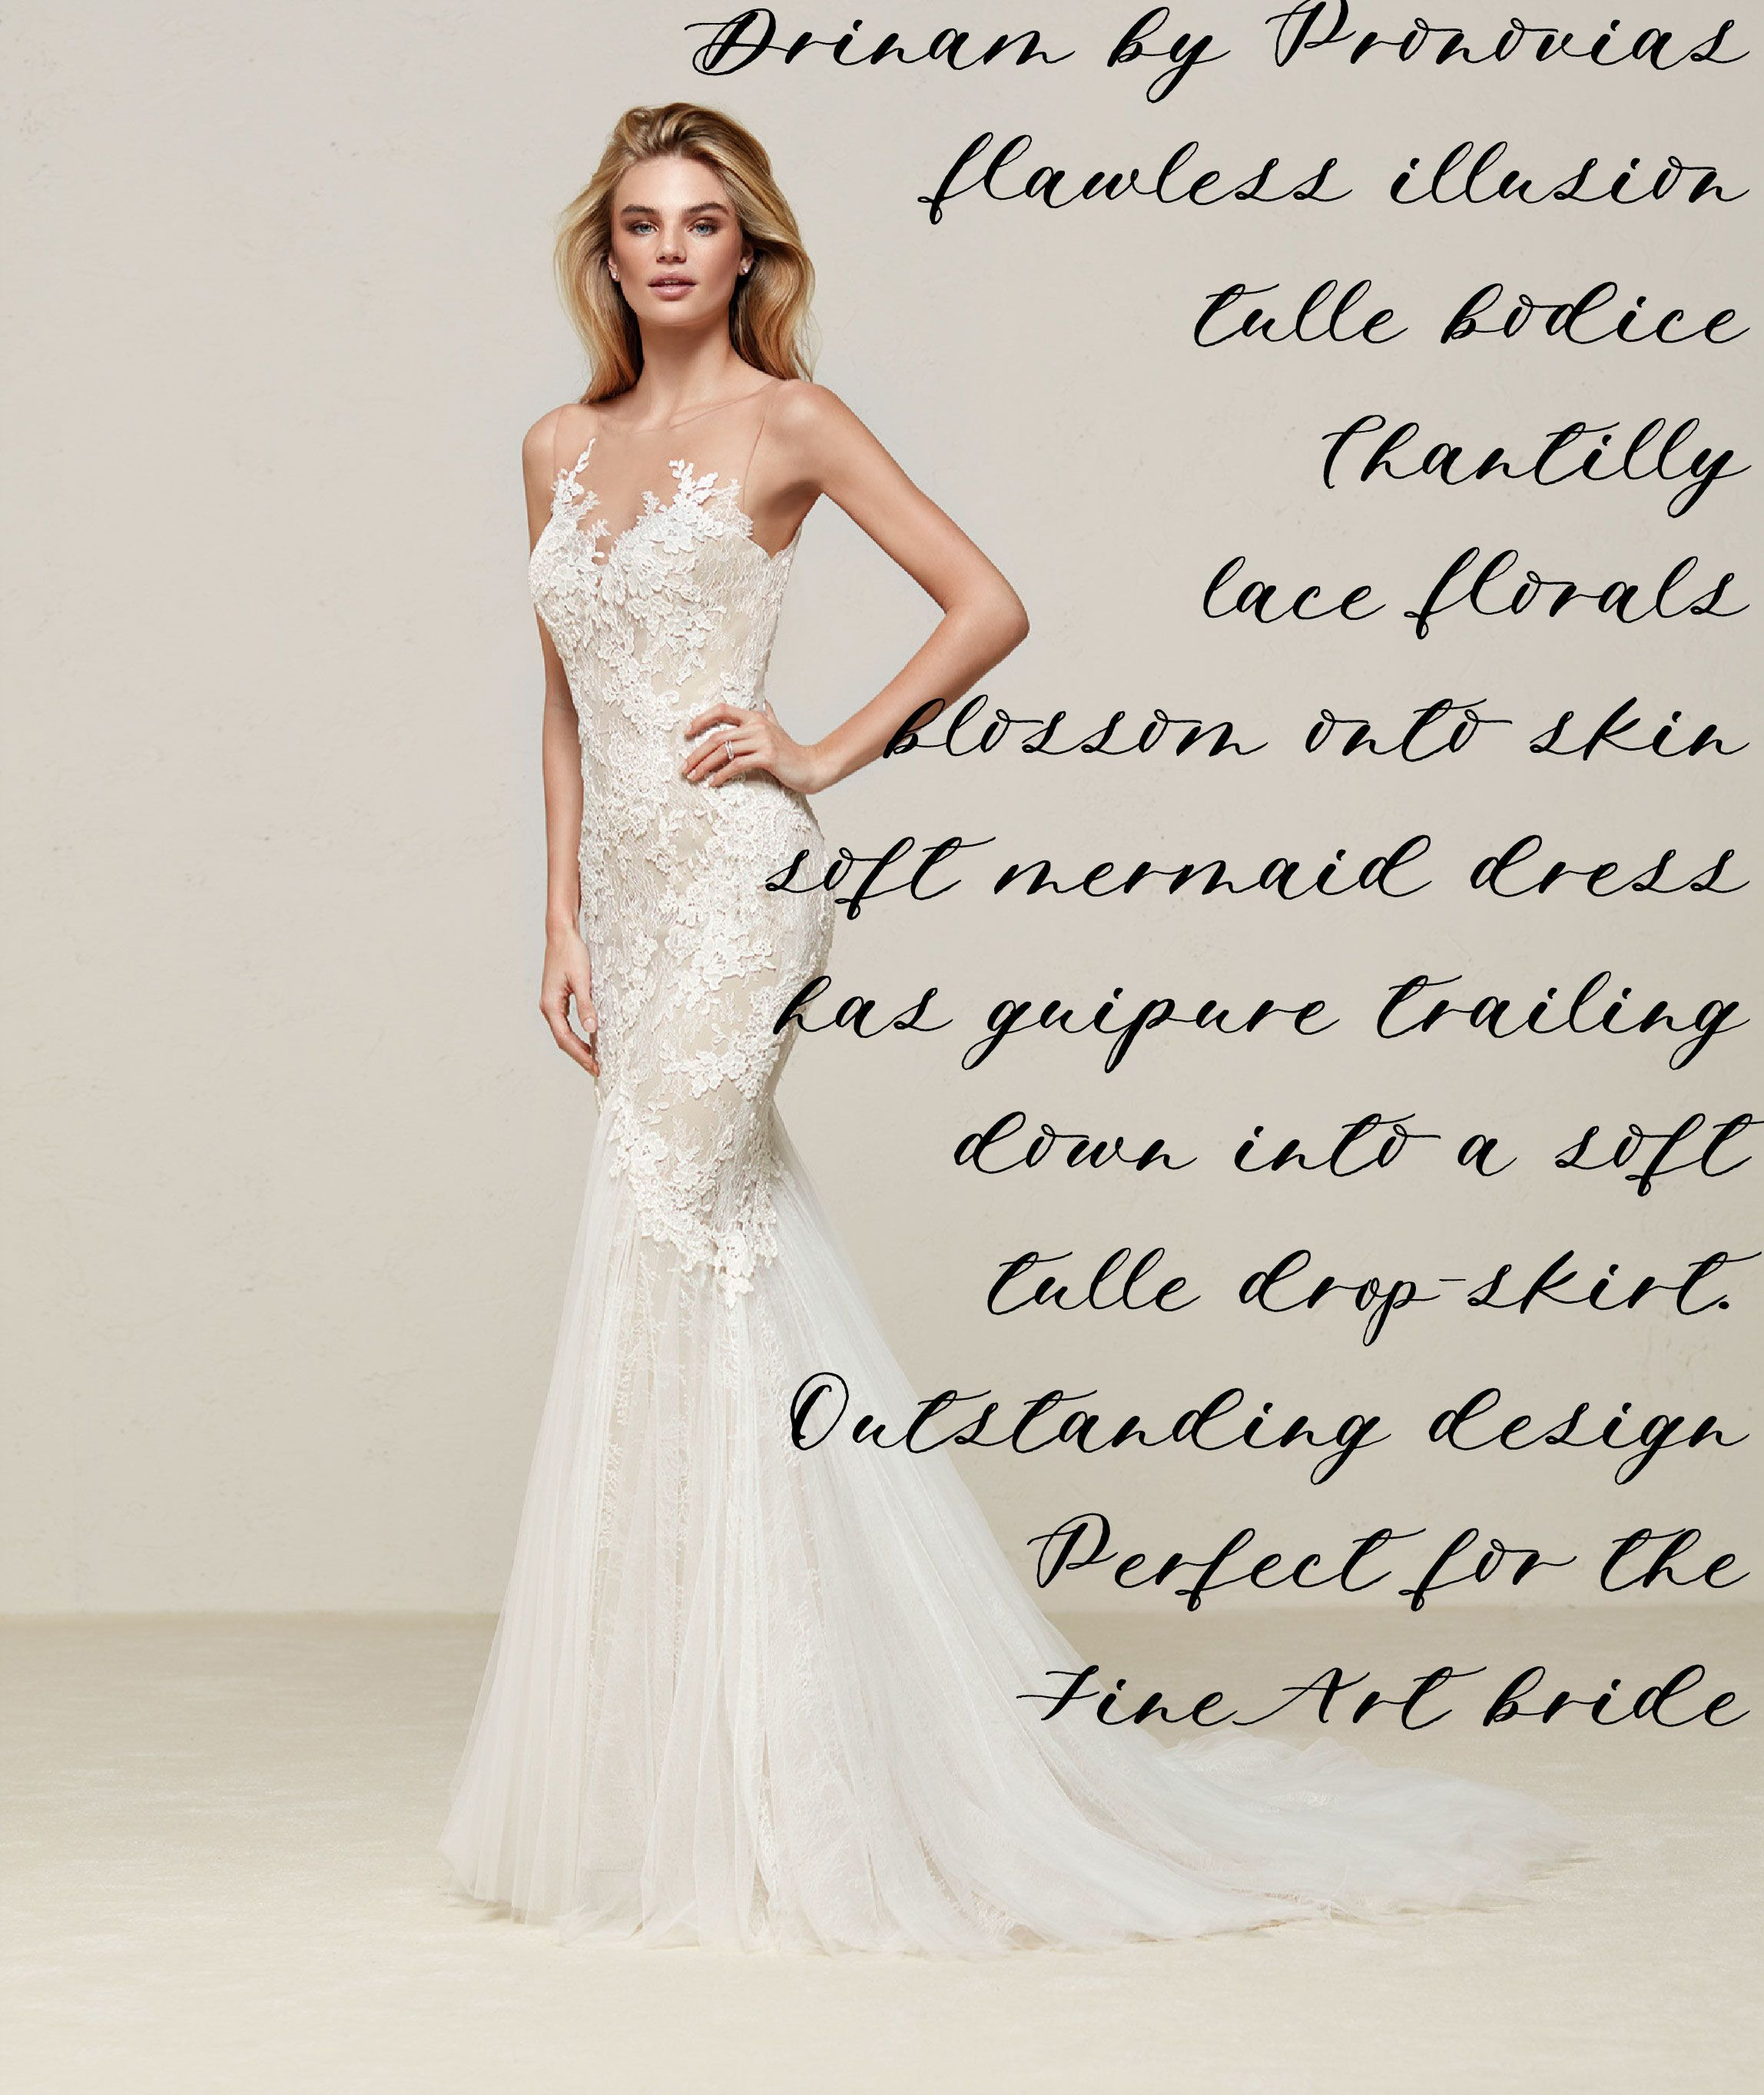 Drinam by Pronovias Flawless illusion tulle bodice gives the effect of  Chantilly lace florals blossoming onto 559556bf952